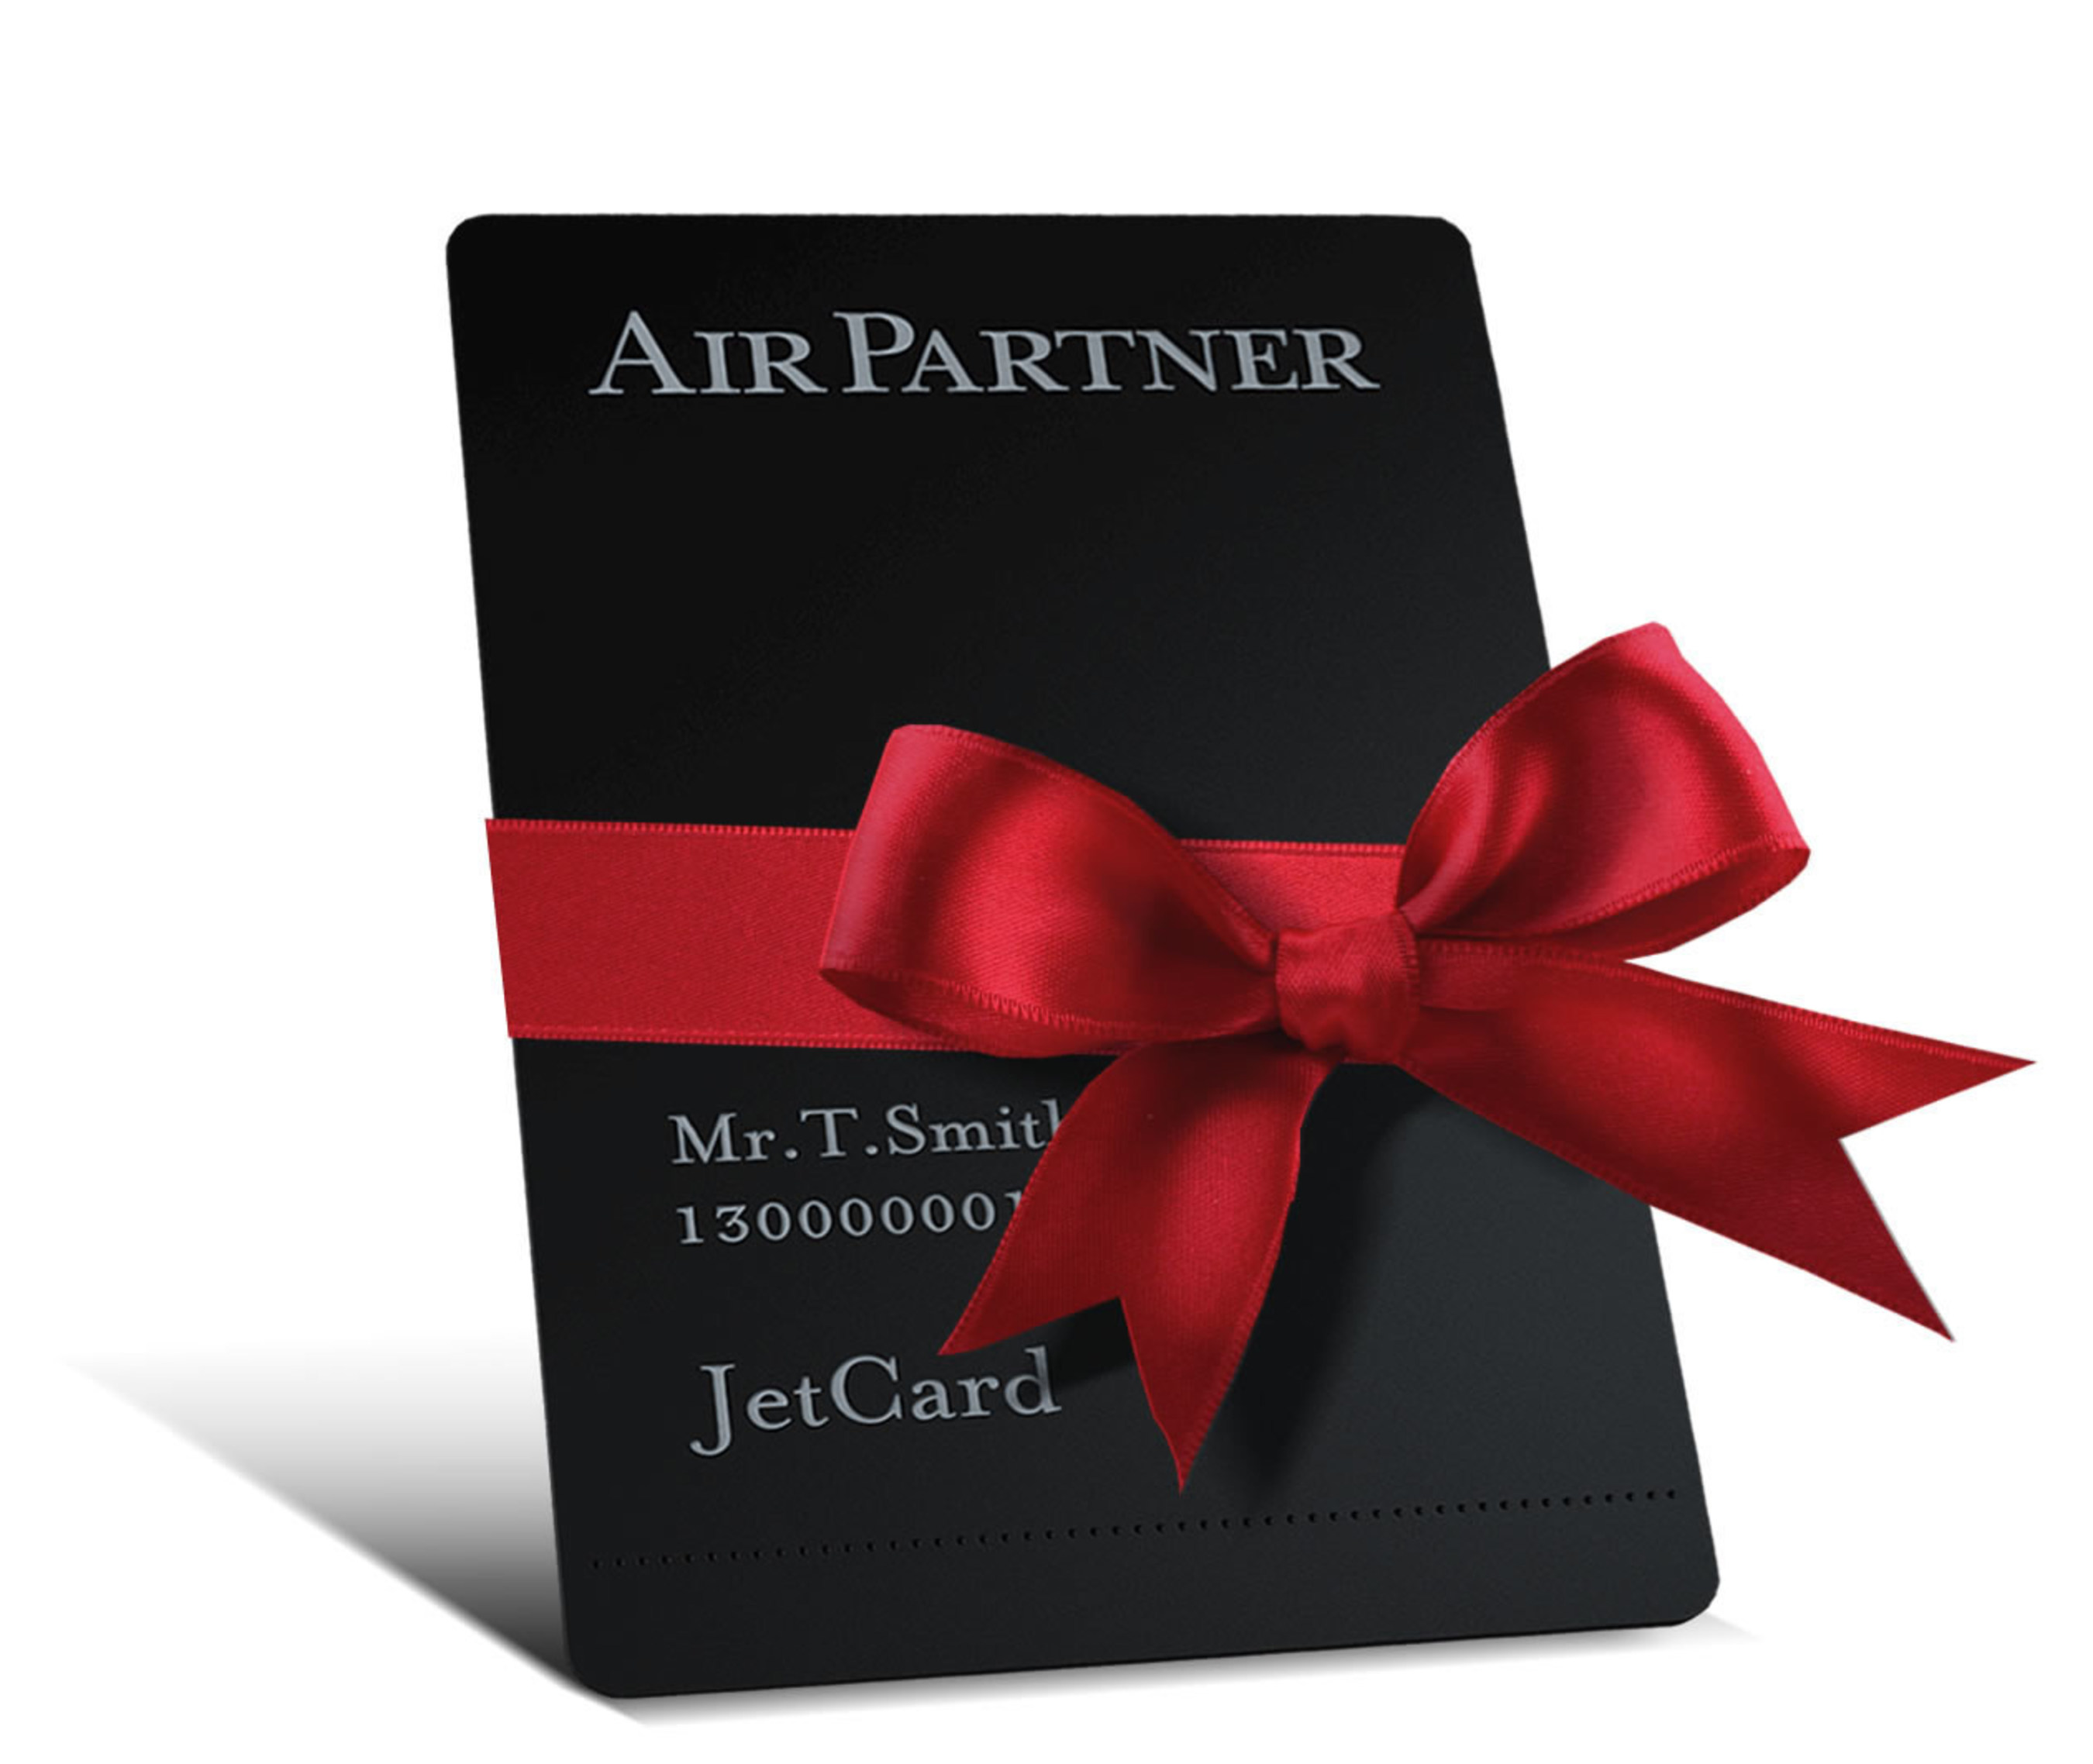 Give the Gift of Flight This Year with Air Partner's Limited-Edition Holiday JetCard